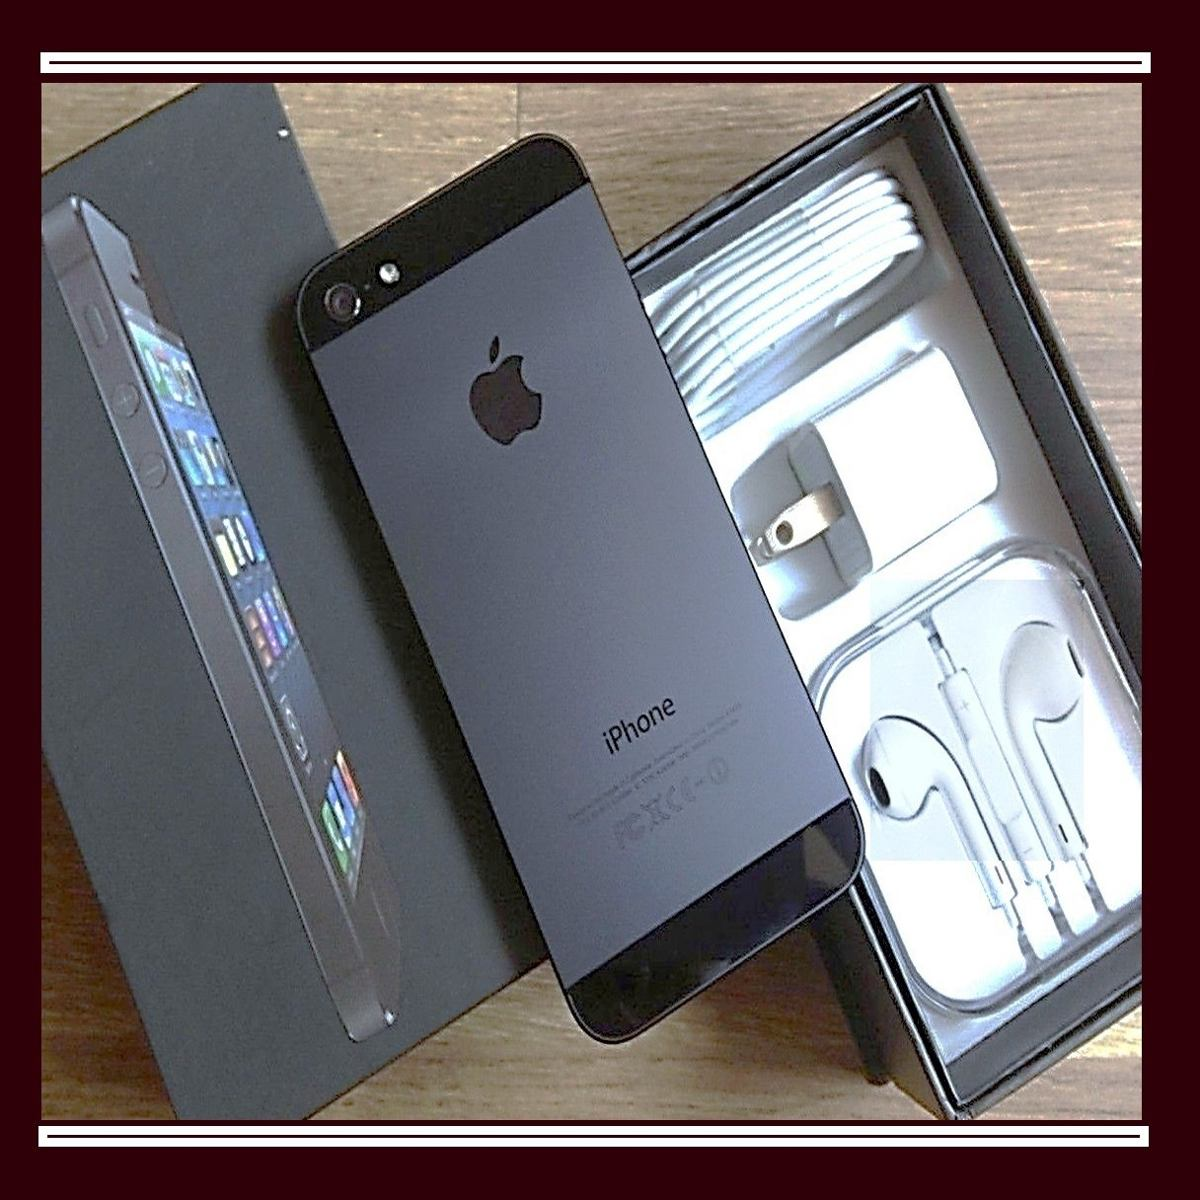 Comprar Iphone 5 32gb Libre Iphone 5 32gb Libre De Fabrica Oferta Estetica